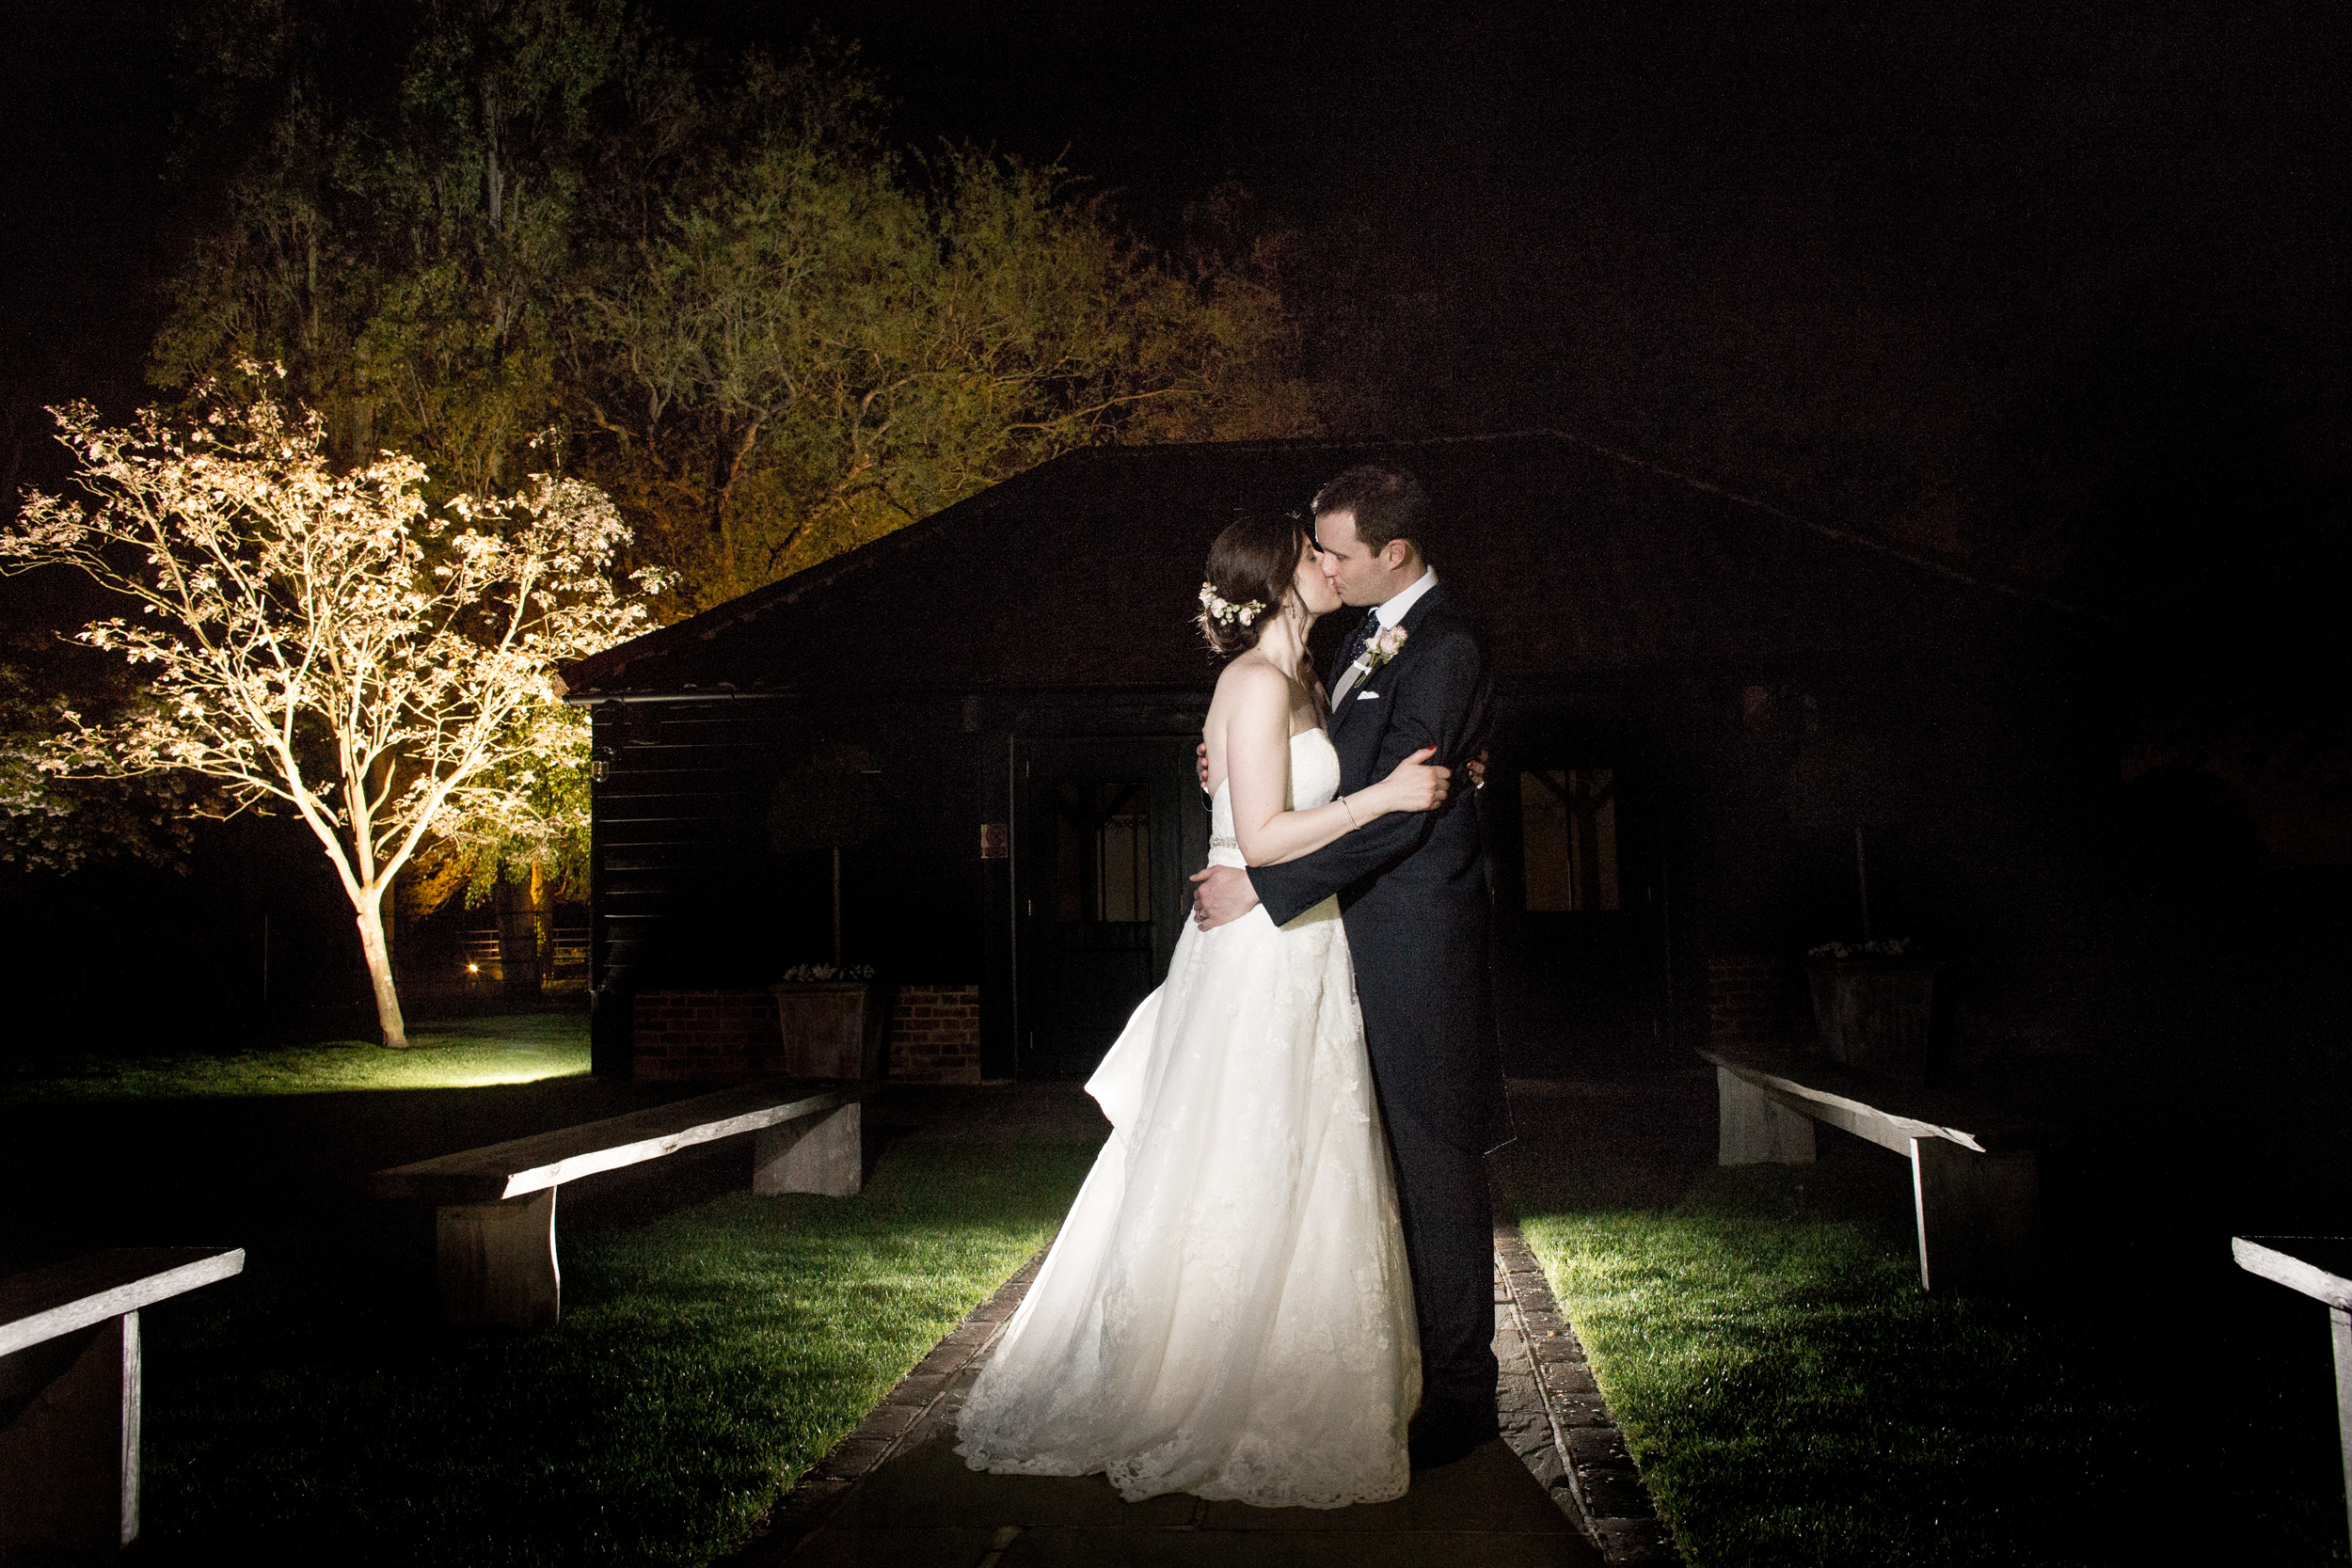 Natalie and Jack Pretty Barn Wedding, Real Wedding 12 - Pingle Pie.jpg